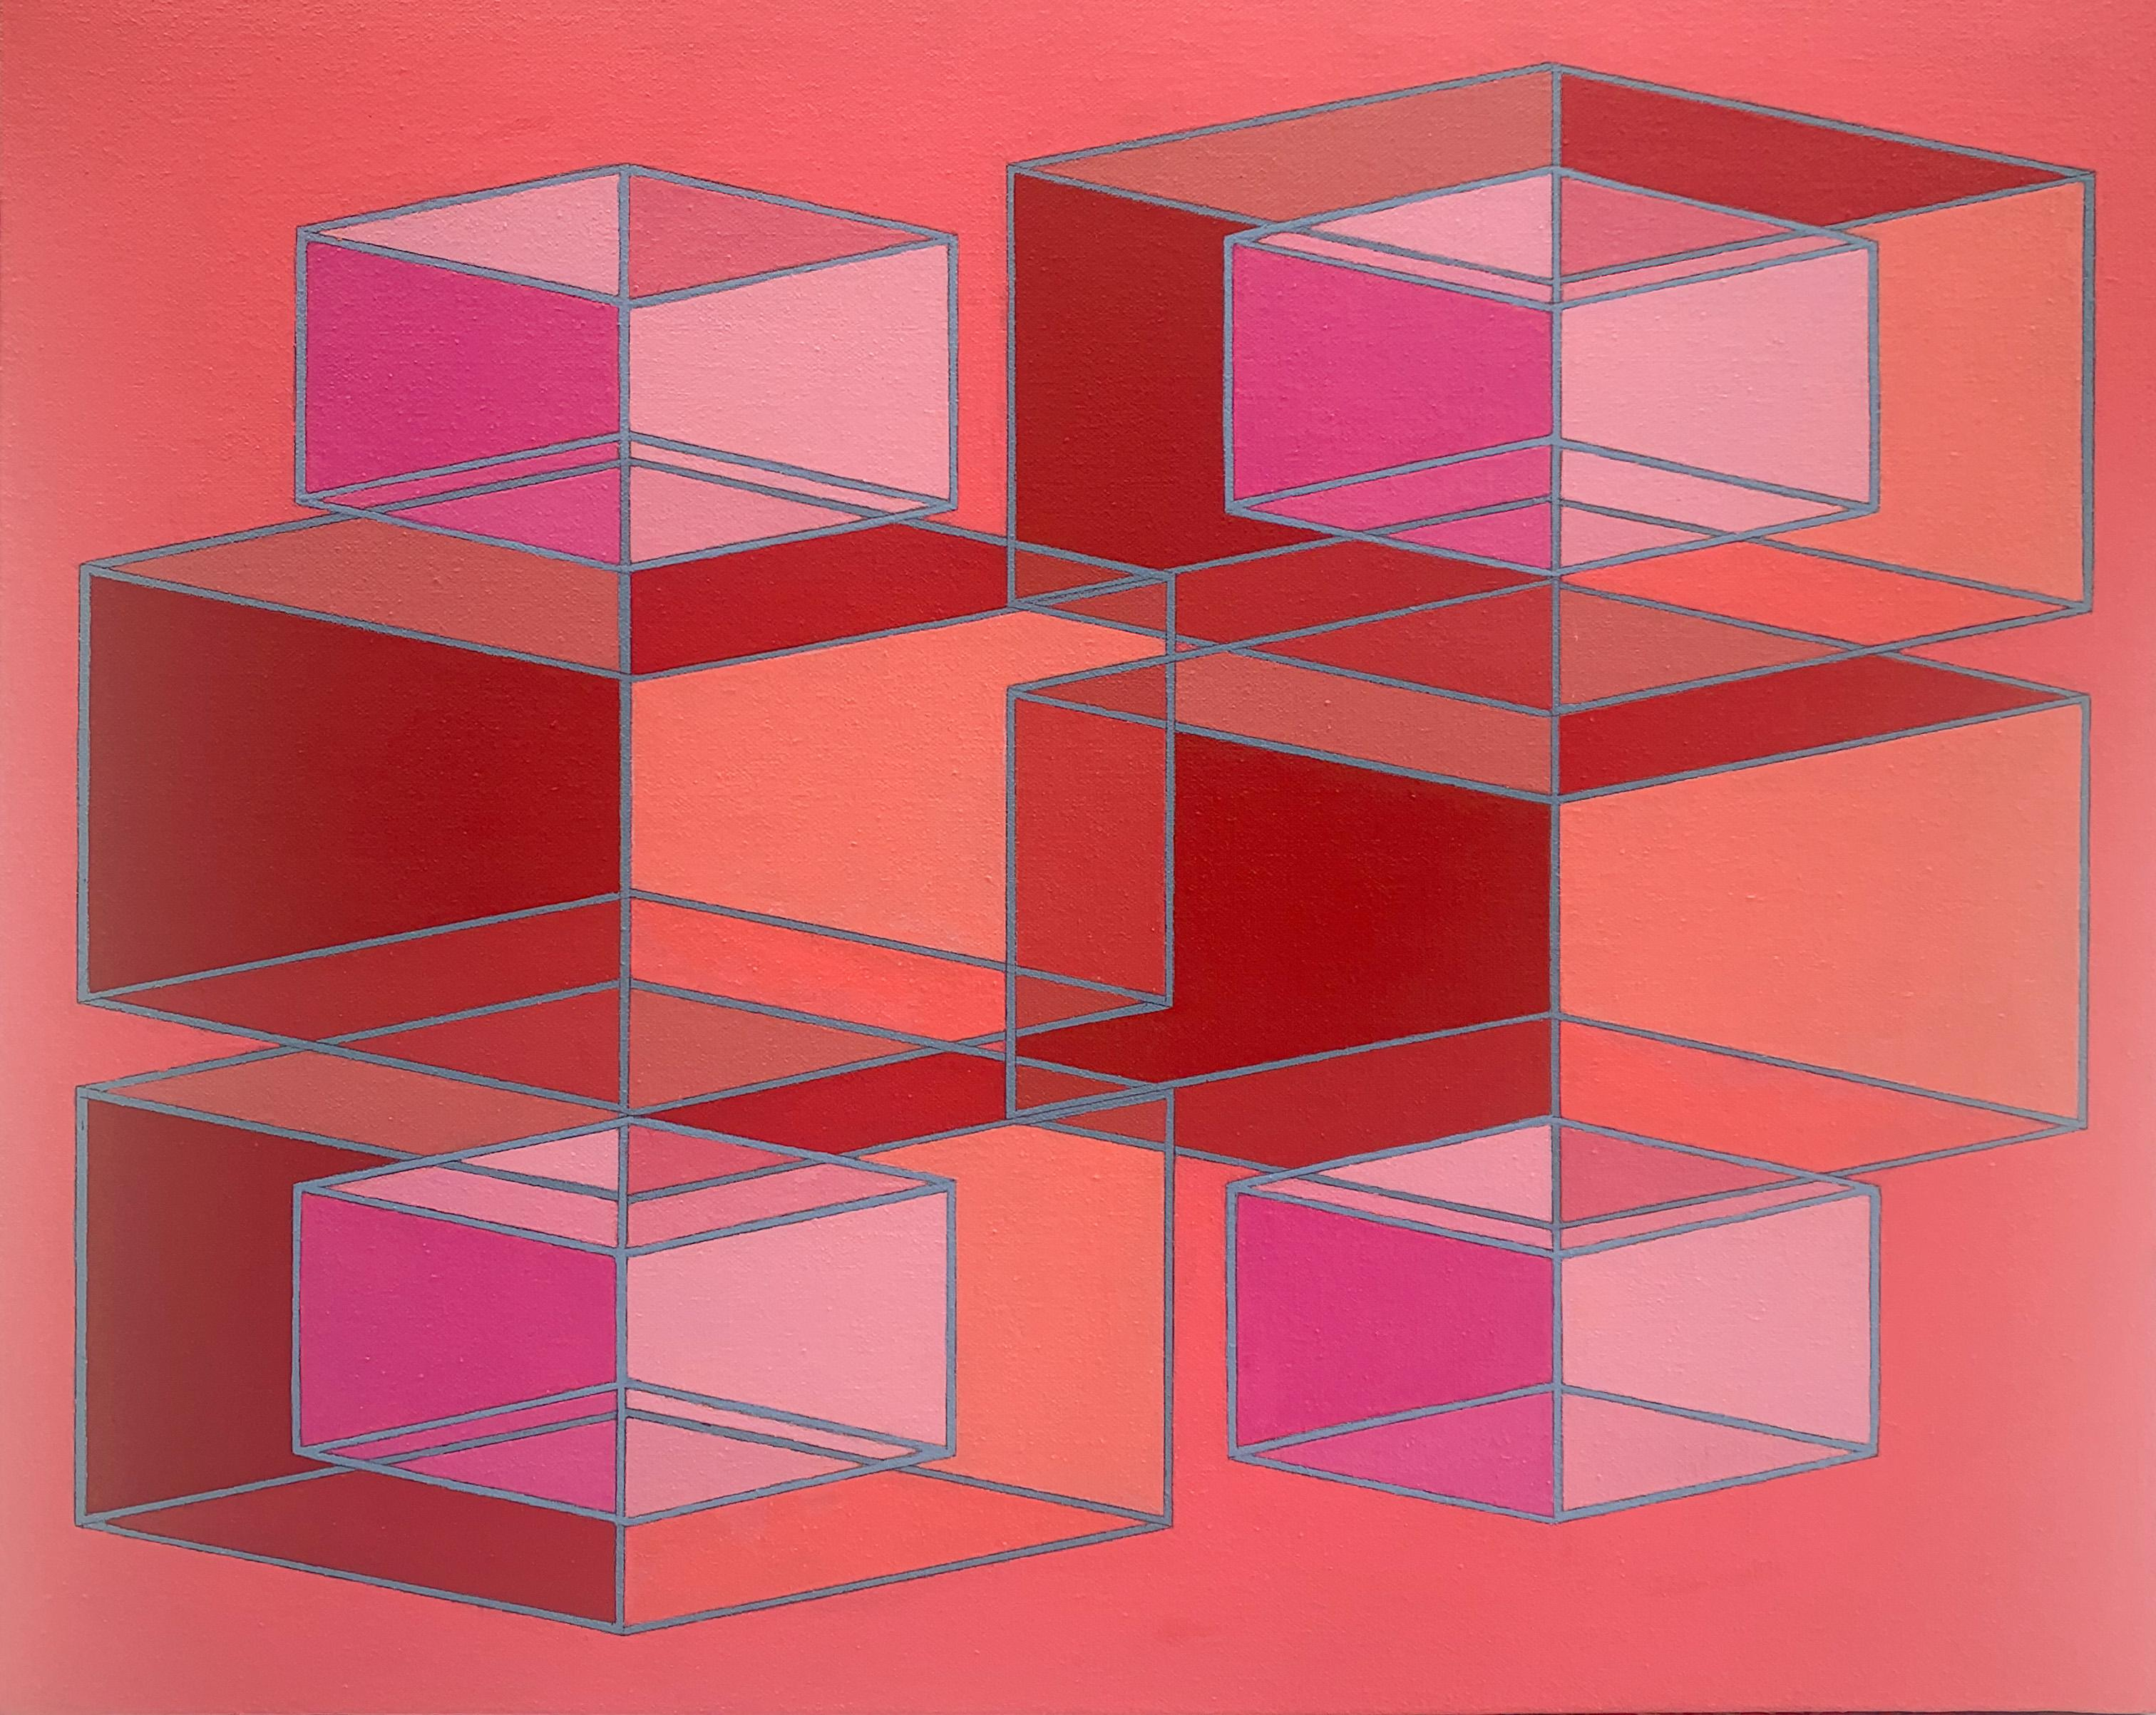 Contemporary geometric abstract Op Art painting w/ red & pink cubes on orange